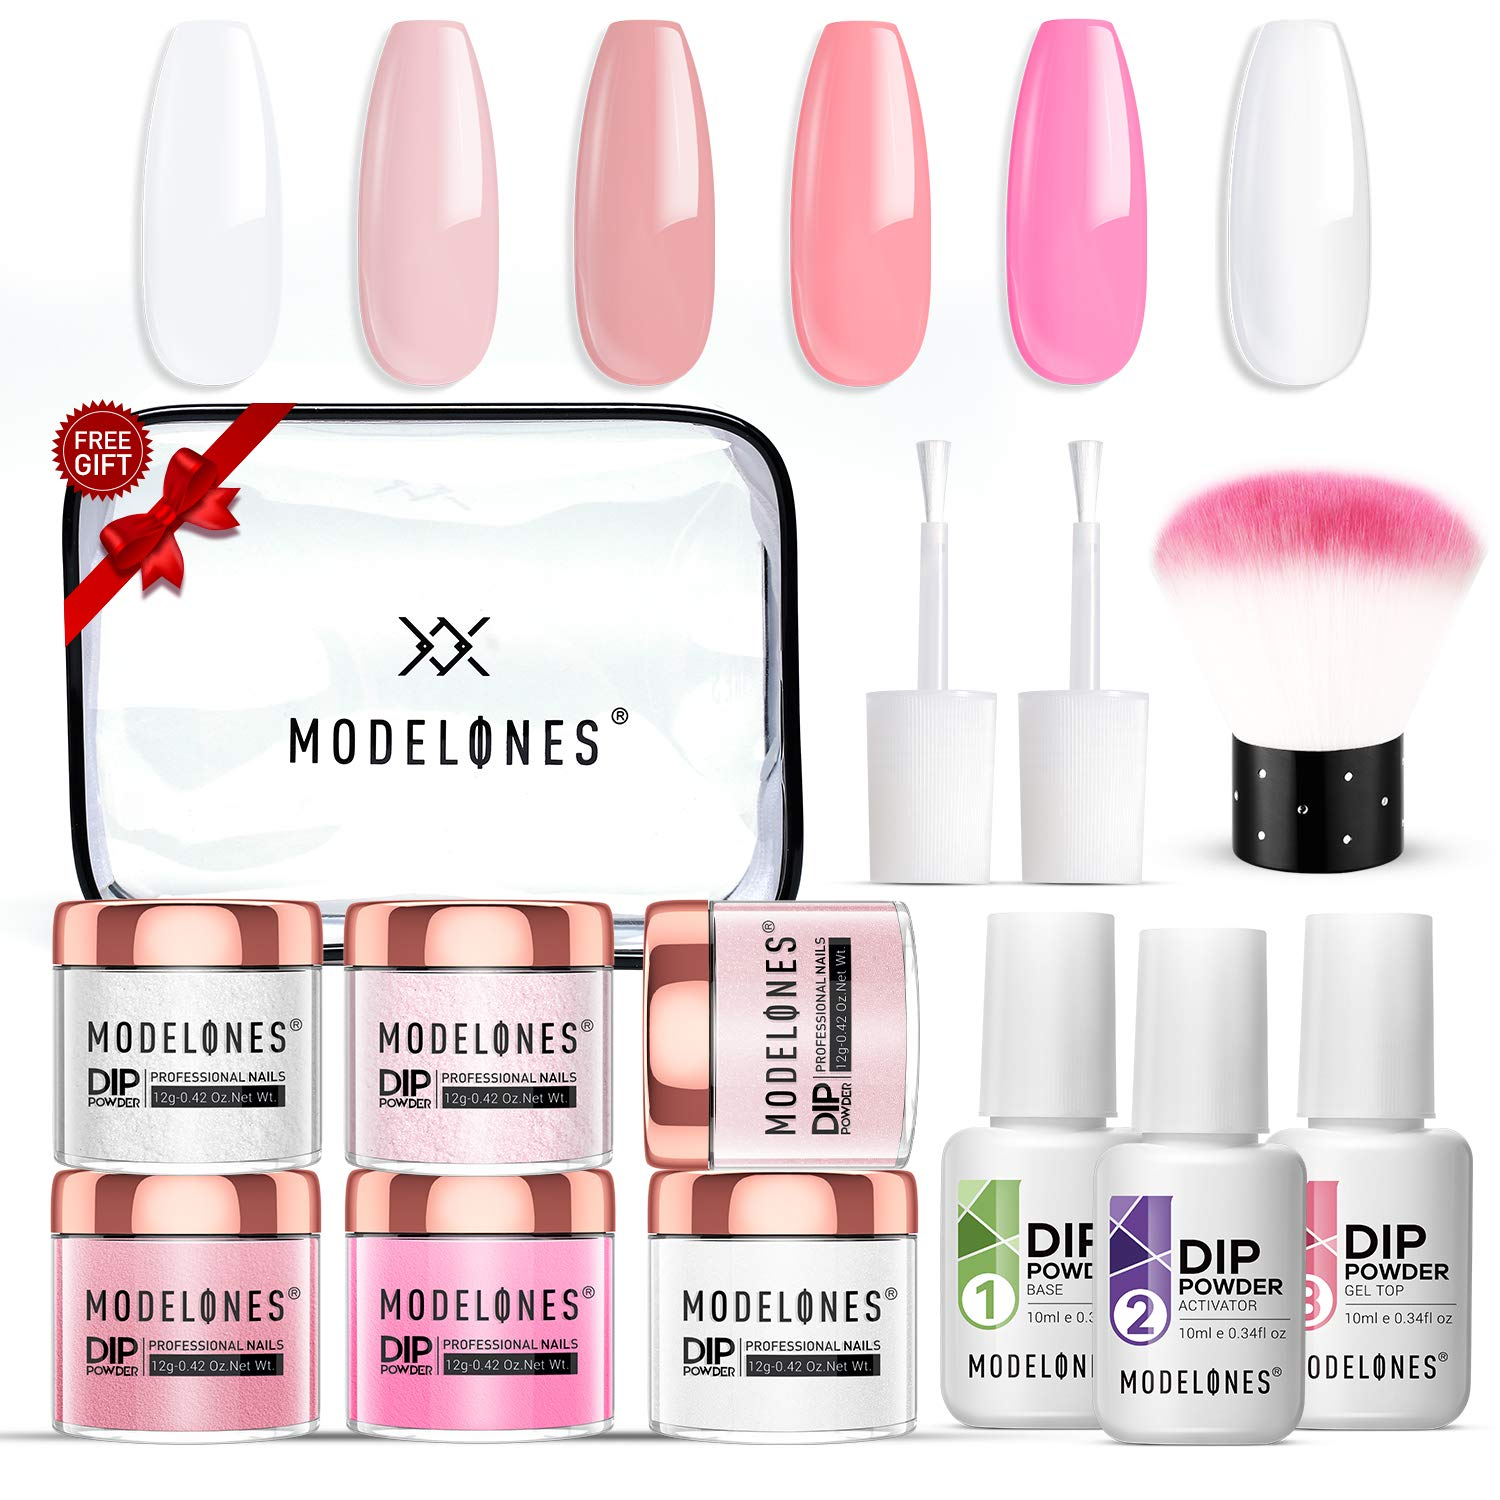 Dip Powder Nail Kit Starter with 6 Color,Dip Powder Nail Starter Kit Dip System Acrylic Dip Nail Kit for French Nail Style No Lamp Needed Quick Do Nail Portable Kit